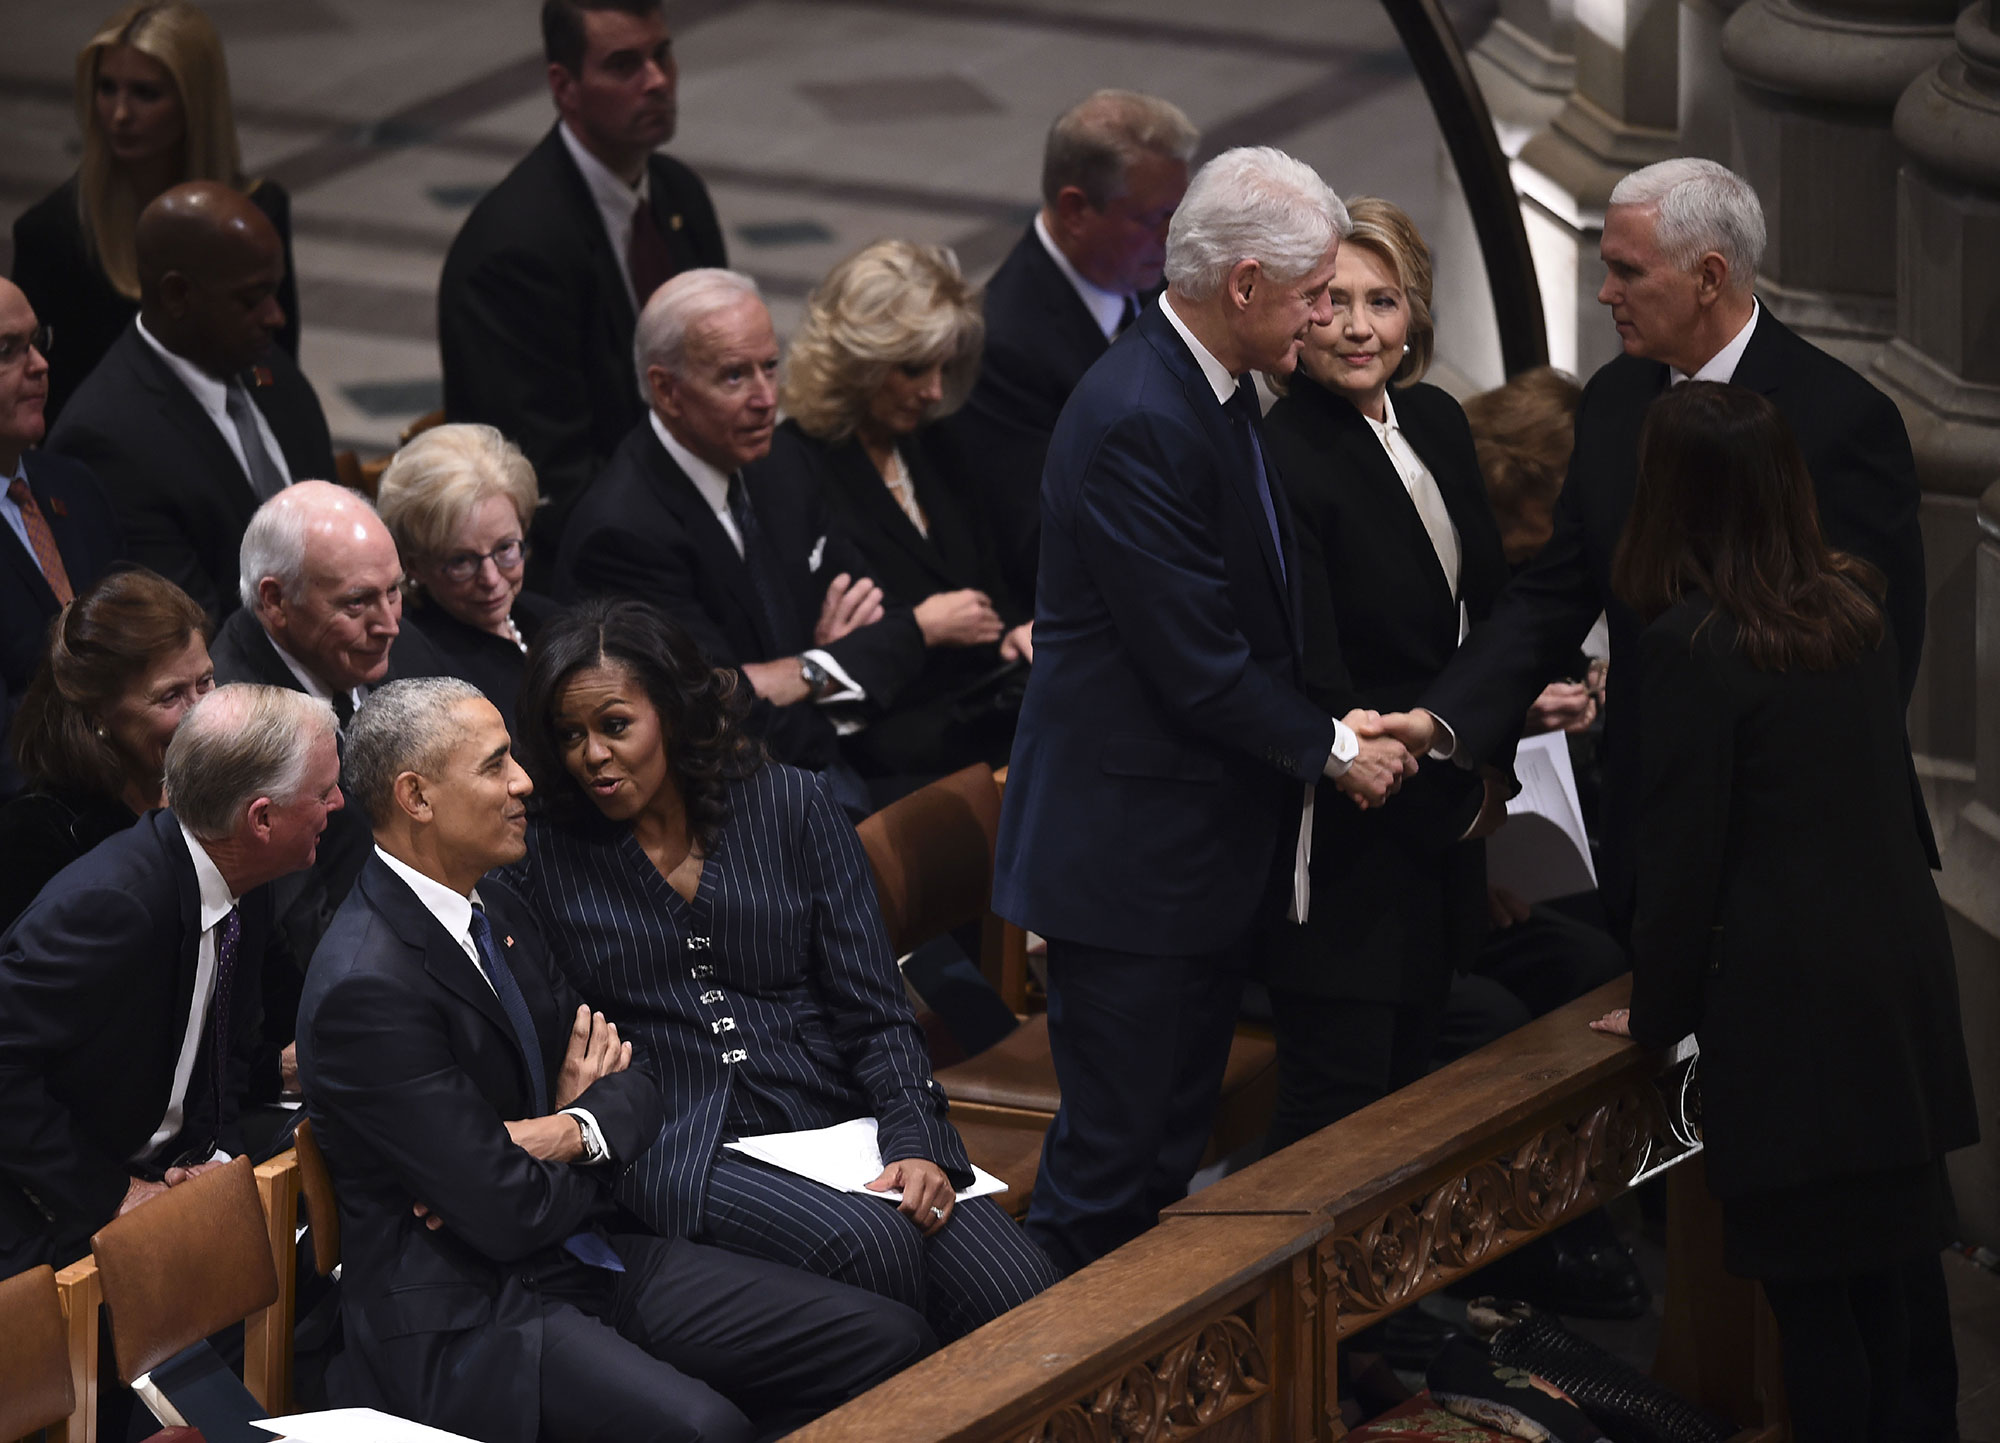 "<div class=""meta image-caption""><div class=""origin-logo origin-image none""><span>none</span></div><span class=""caption-text"">Barack Obama and Michelle Obama speak as Bill Clinton and Hillary Clinton greet Vice President Mike Pence and Karen Pence before the funeral. (BRENDAN SMIALOWSKI/AFP/Getty Images)</span></div>"